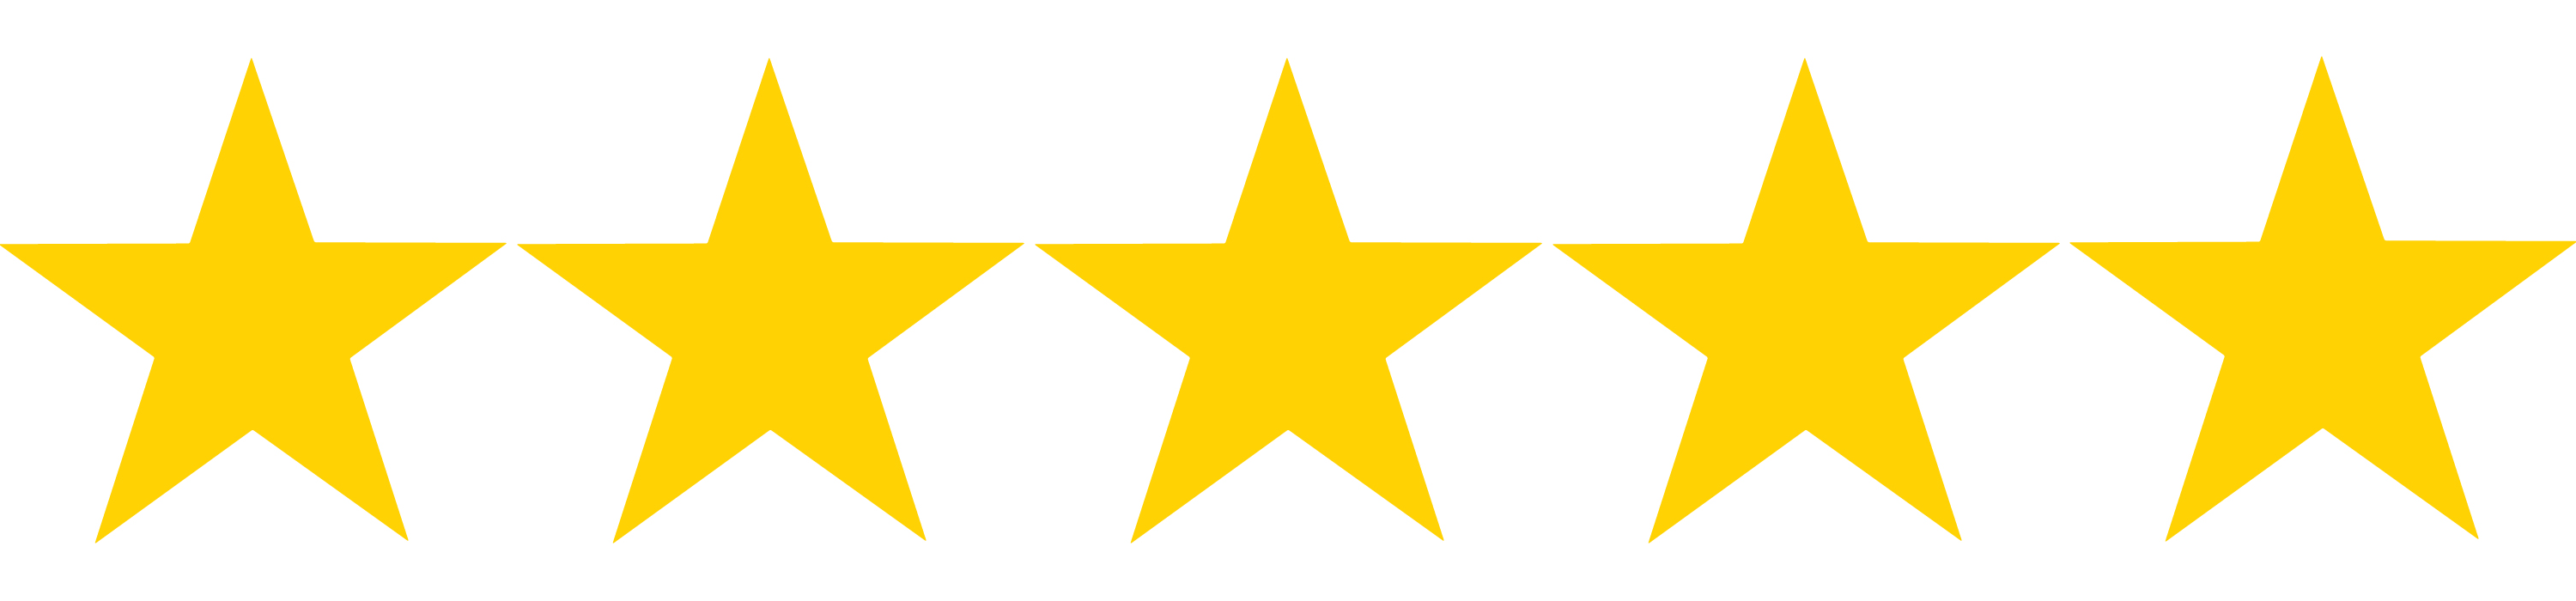 5 Gold Stars | Free download on ClipArtMag